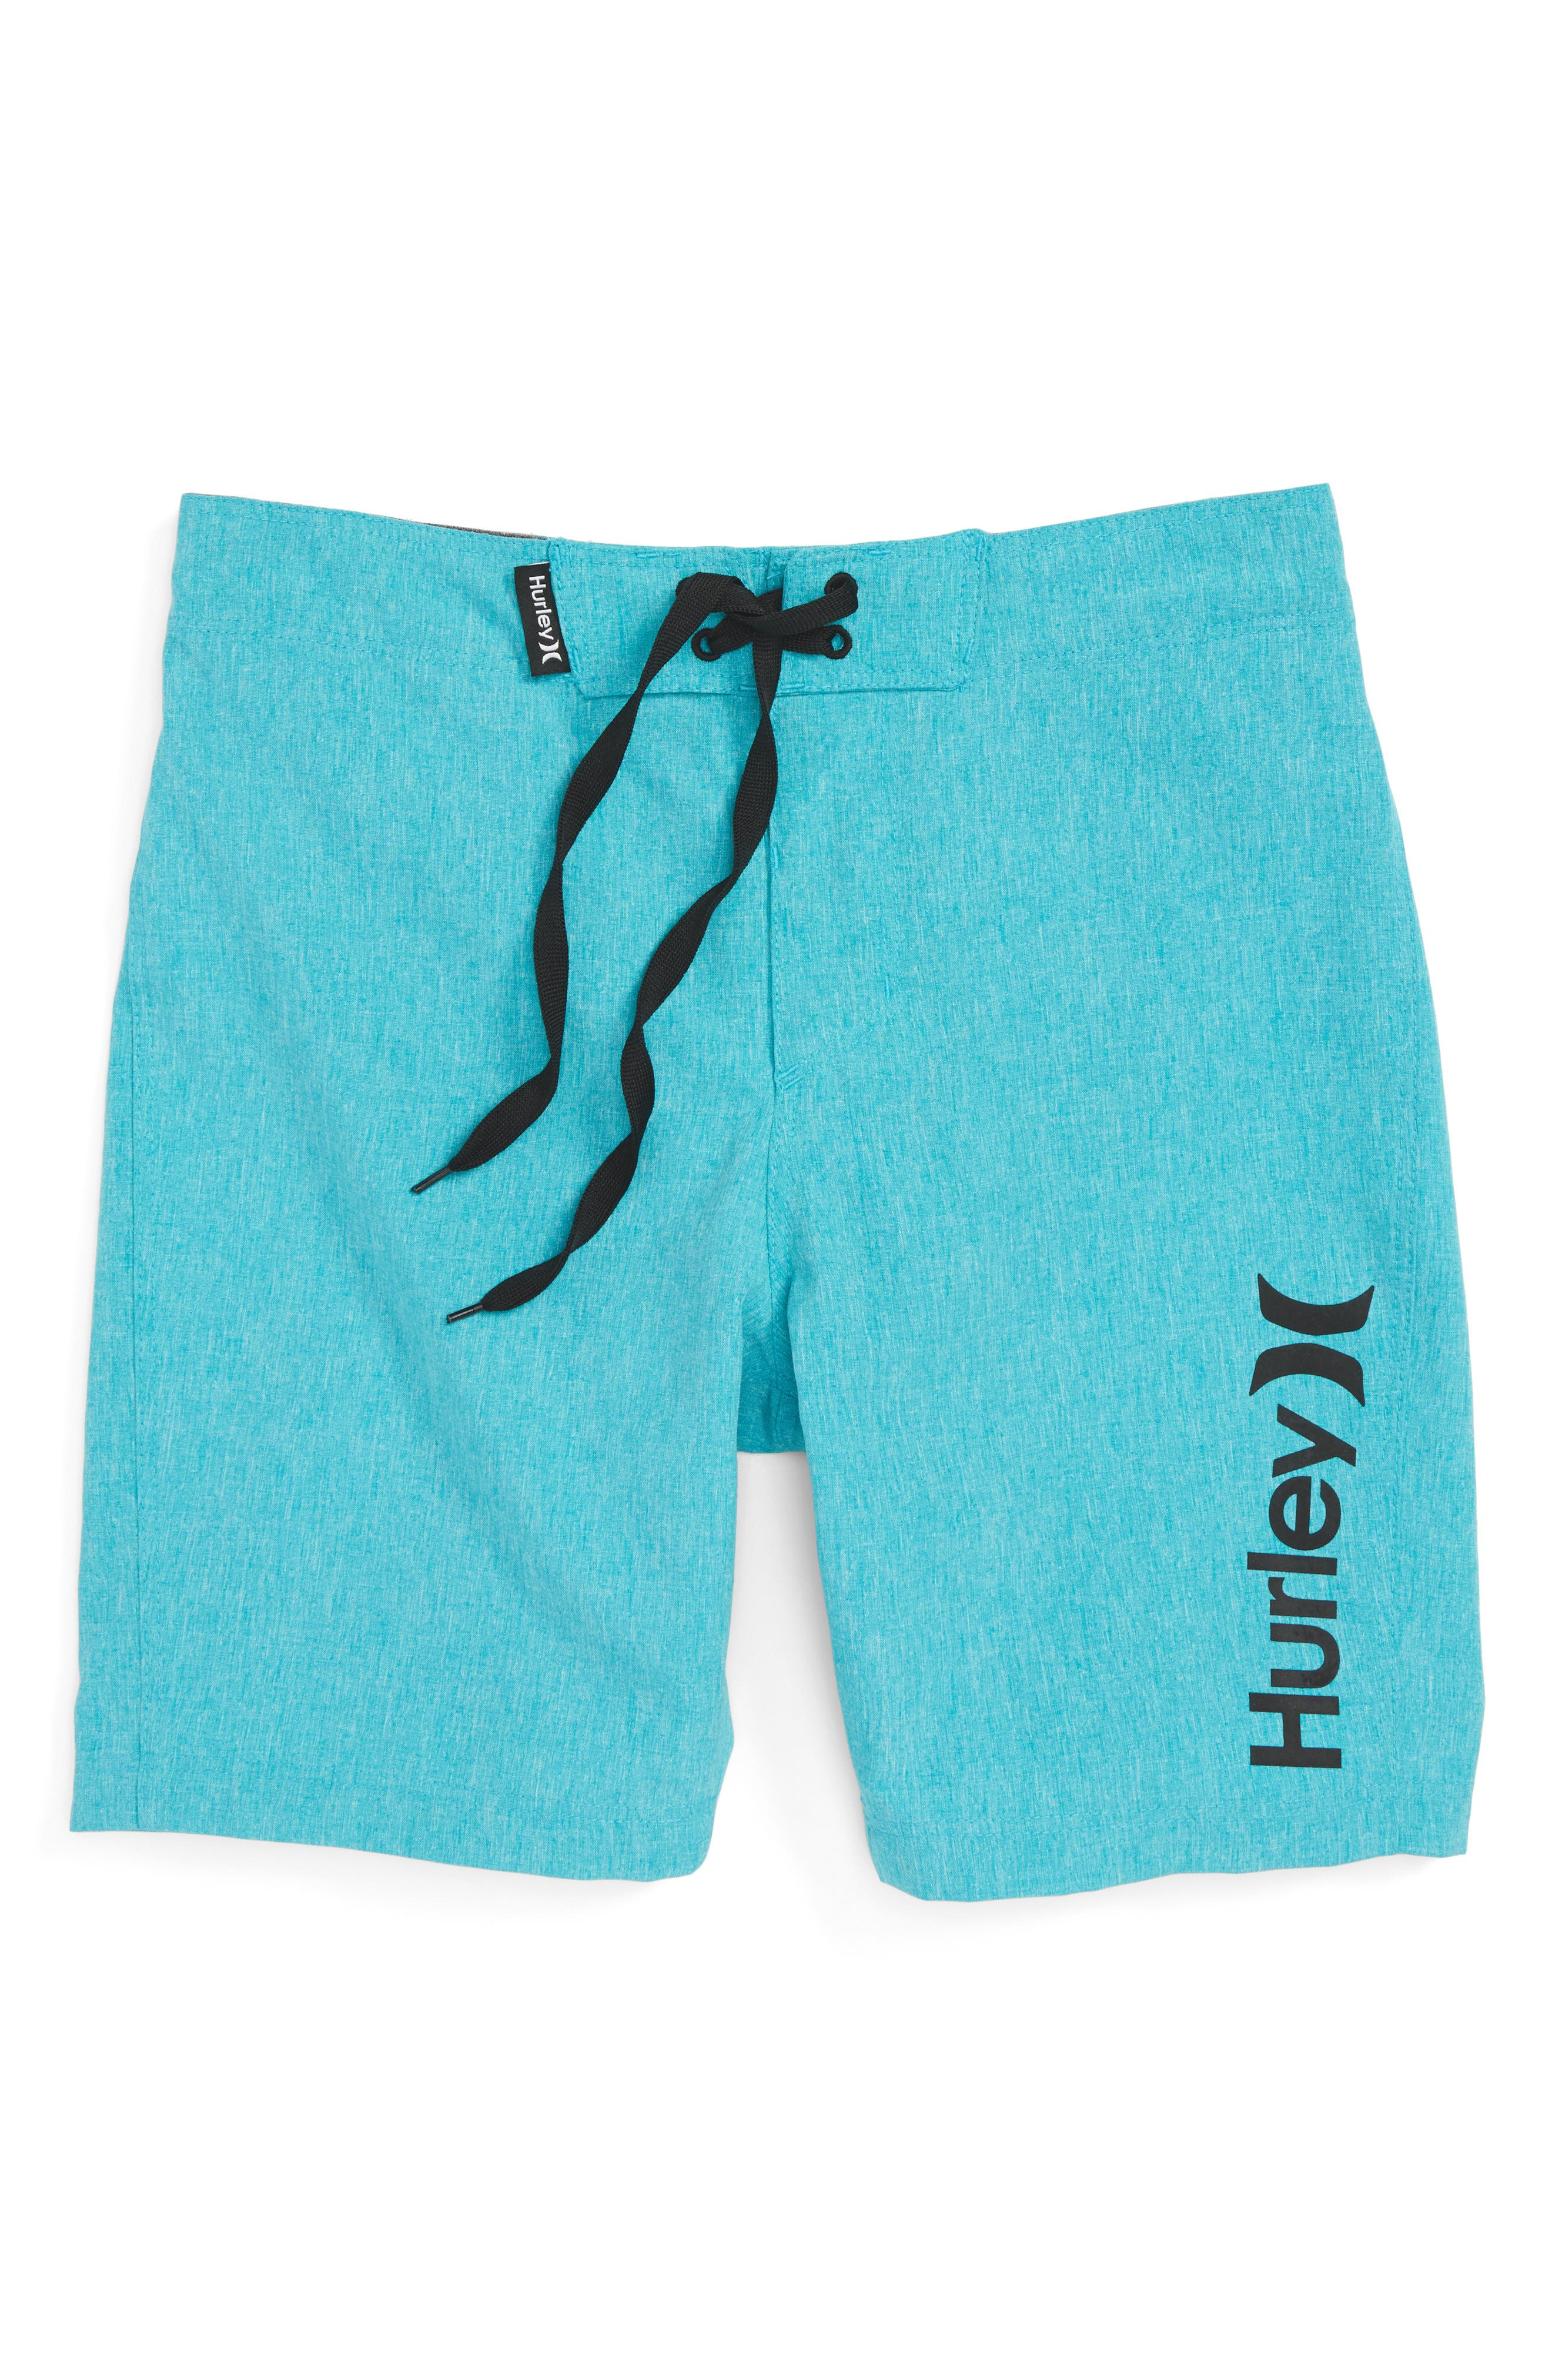 One and Only Dri-FIT Board Shorts,                             Main thumbnail 3, color,